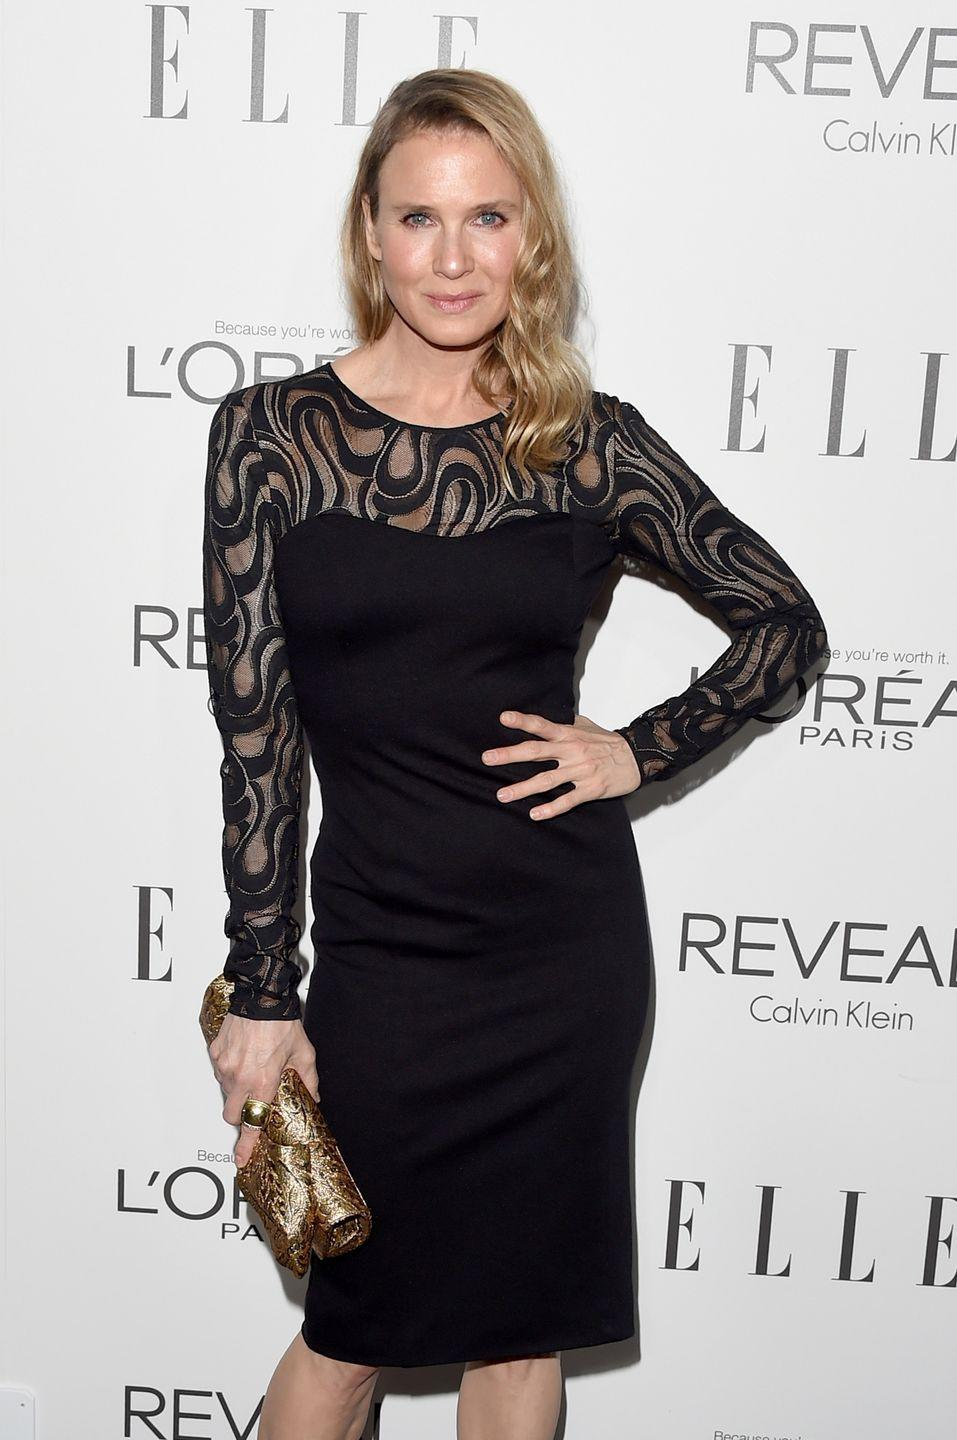 <p>Renée, born in Katy, Texas, has spent a good portion of her life in her home state. After growing up in Katy, she attended the University of Texas at Austin, and even began her acting career in commercials and low budget films in Texas.</p>